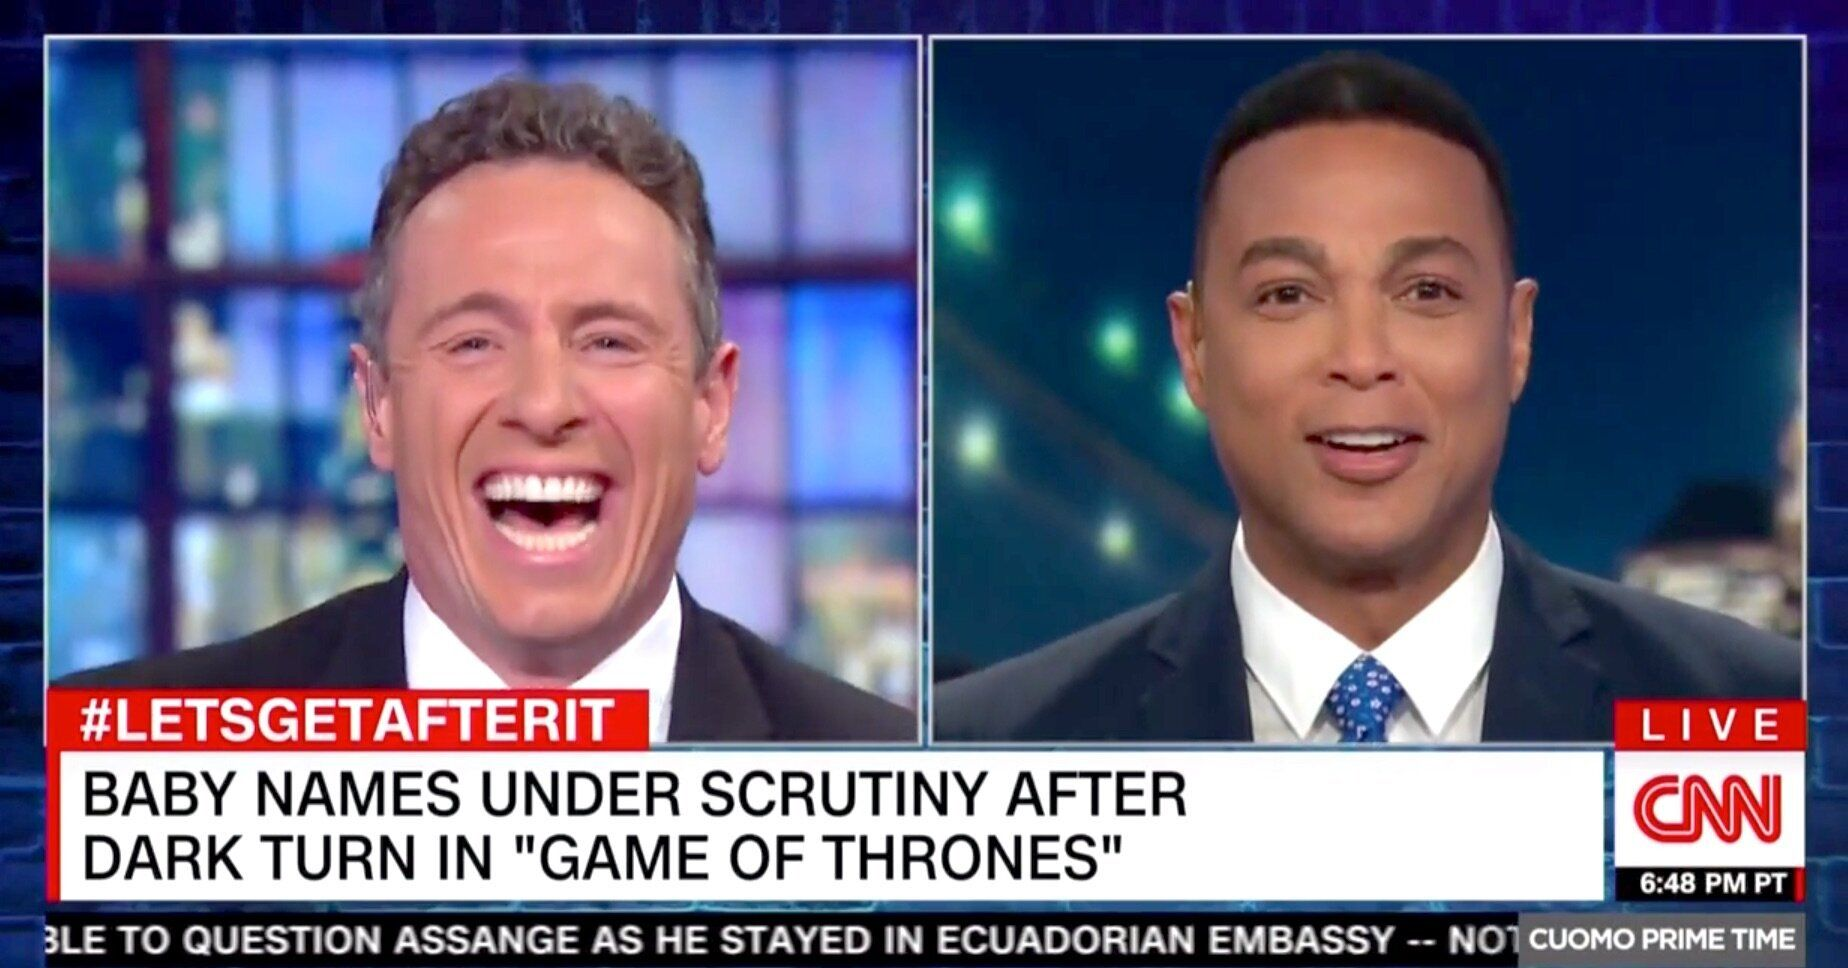 Chris Cuomo, Don Lemon